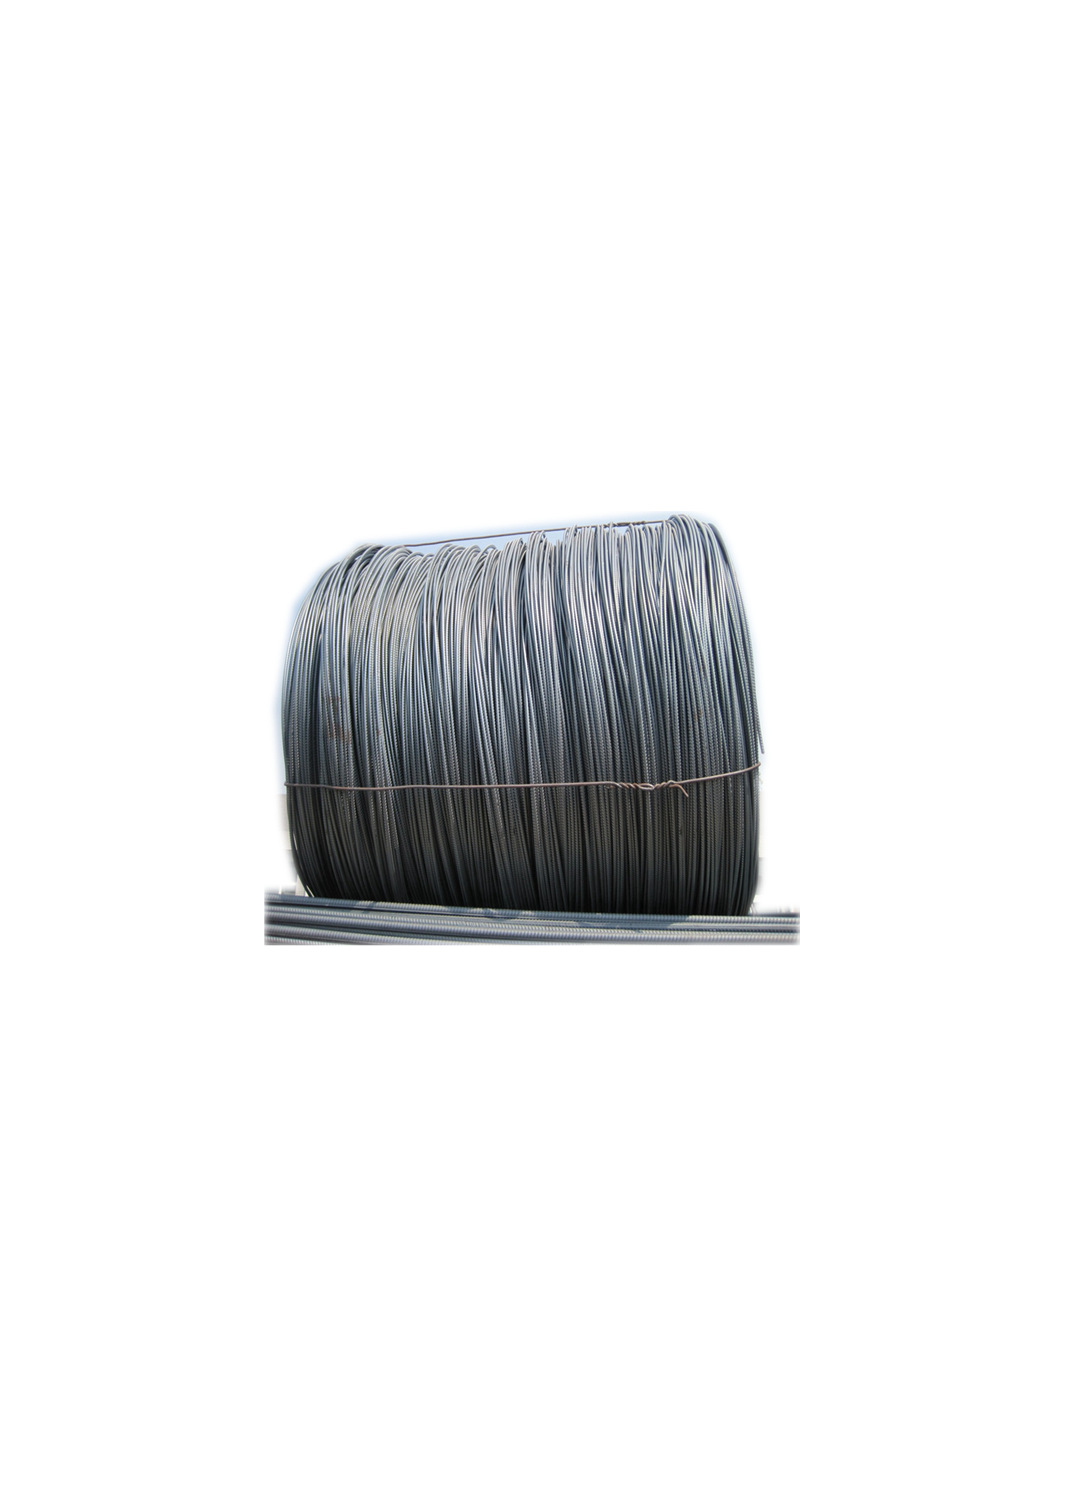 Finish-rolled rebar wholesale Panluo Kunming price complete specifications